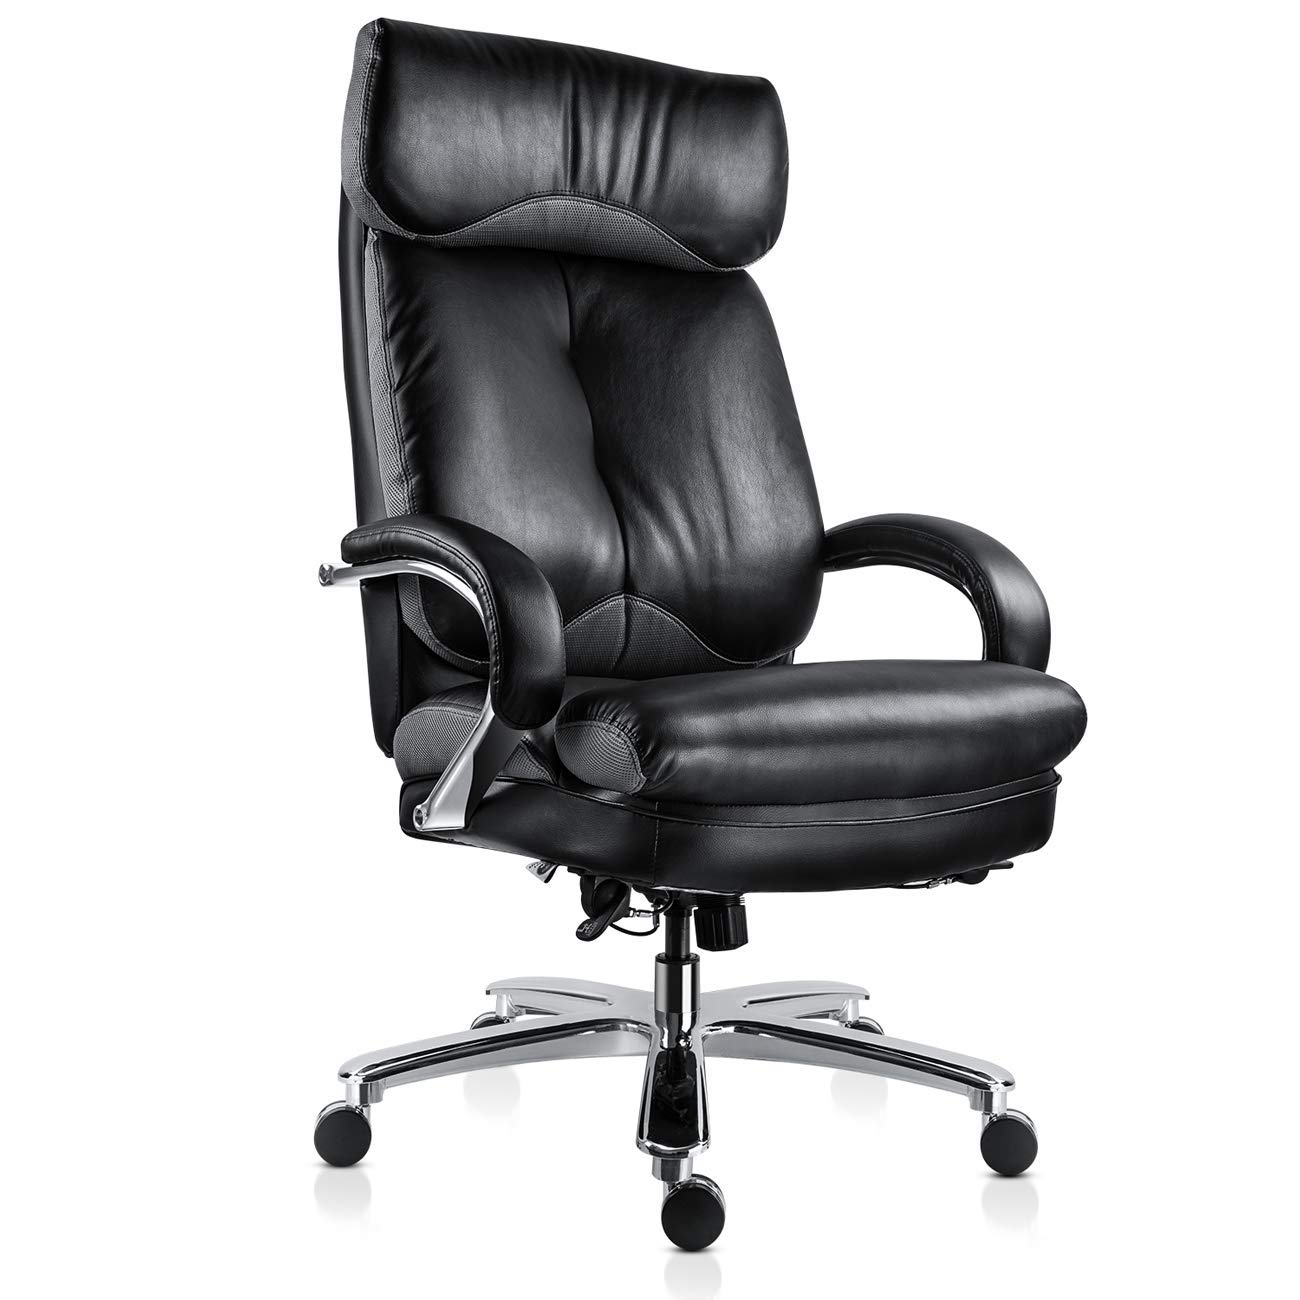 Mdl furniture executive office chair big and tall 500lbs ergonomic home office chair thick padded seat heavy duty office chair with tilt function black